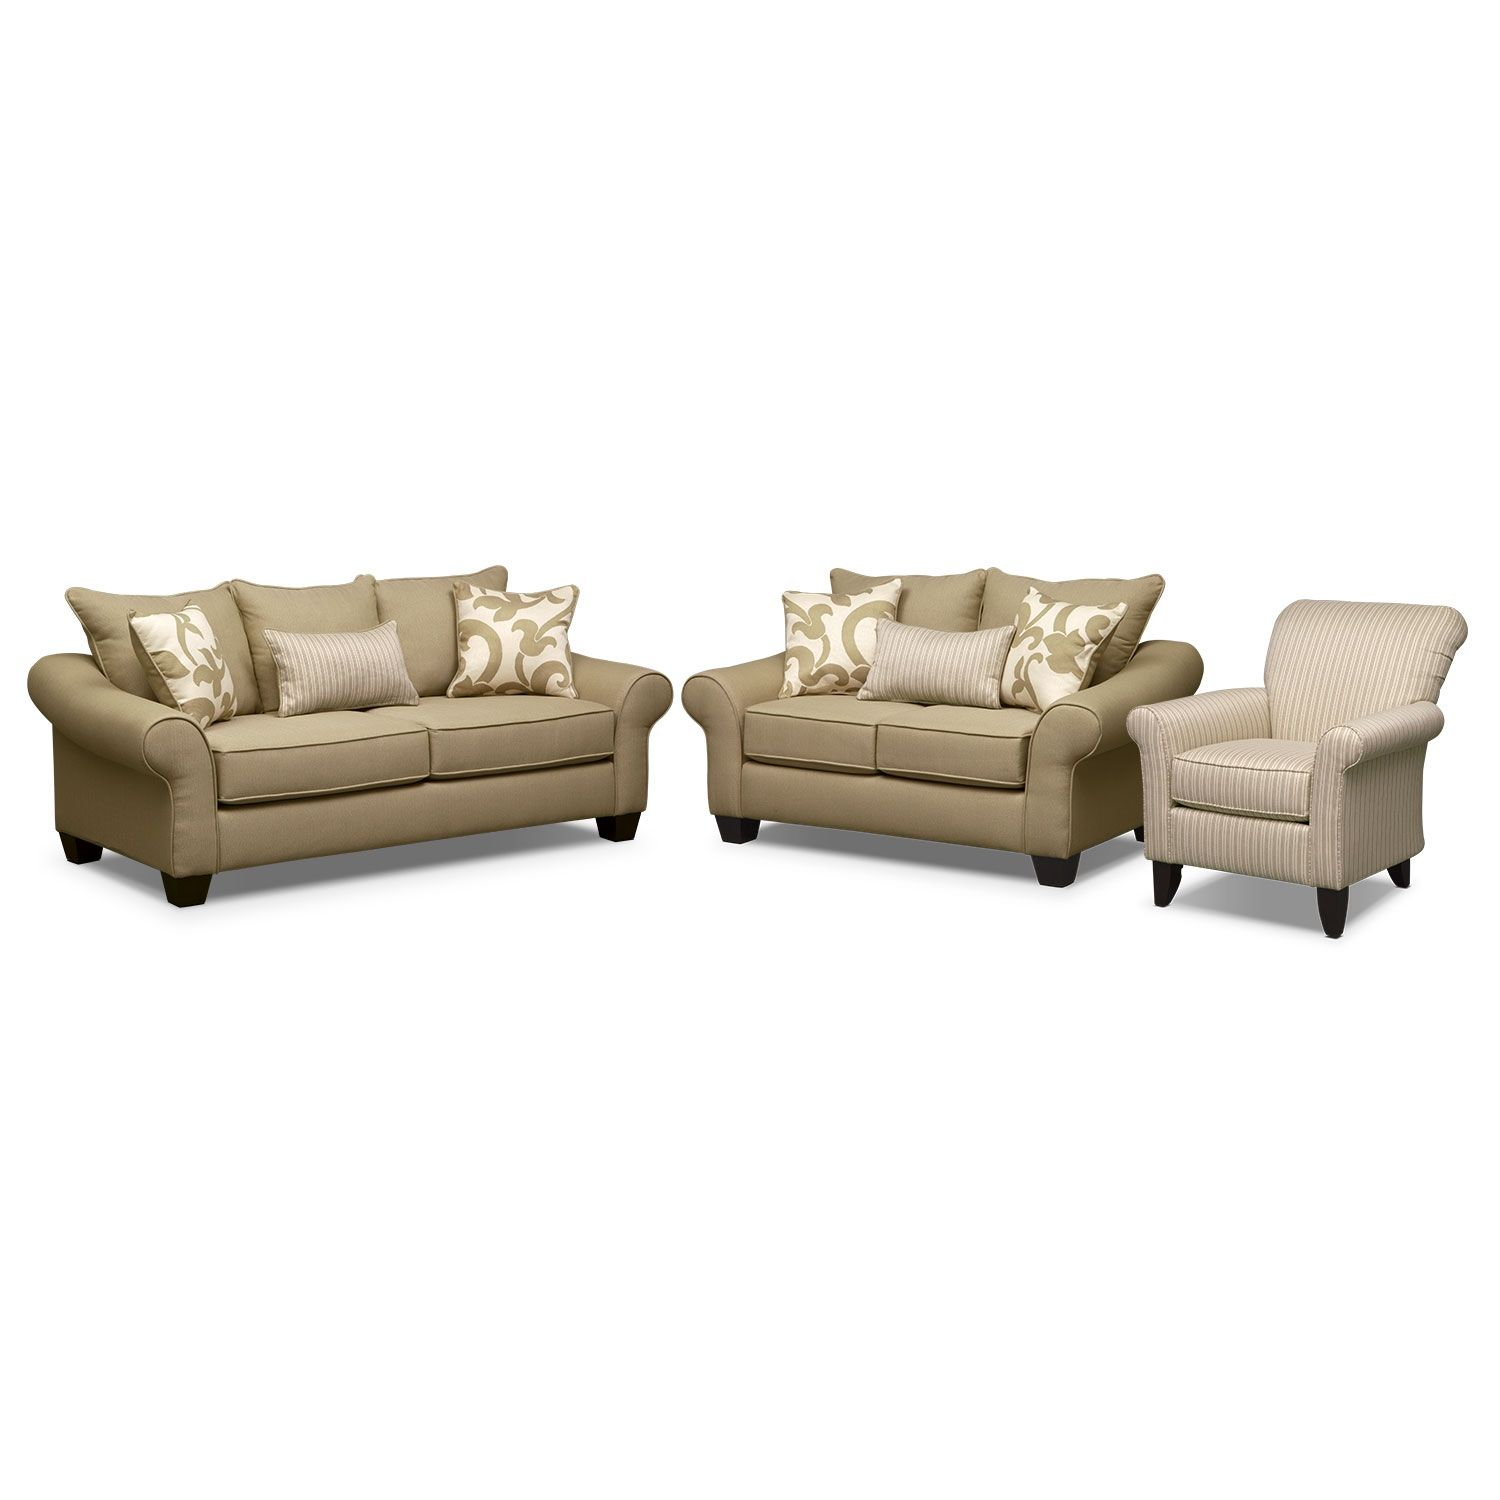 Living room furniture colette khaki pc living room w accent